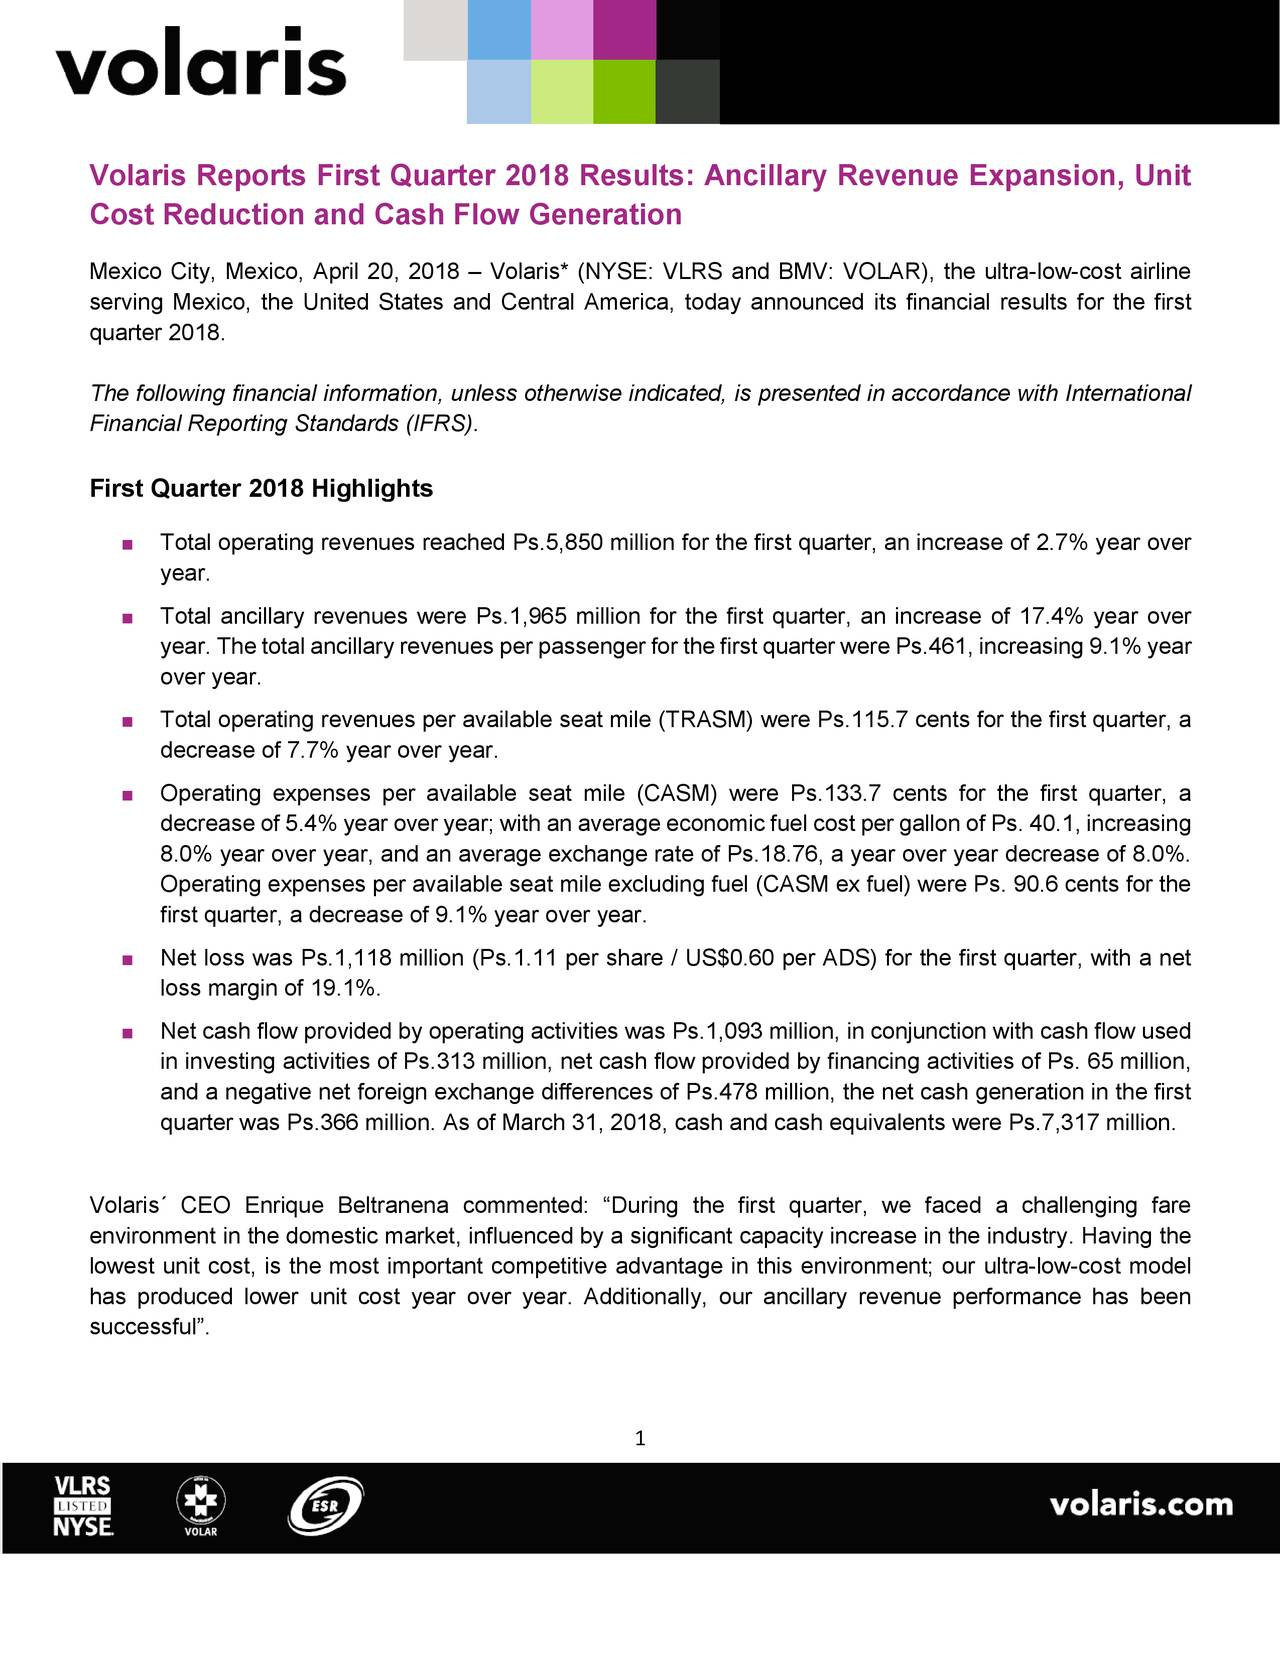 """Cost Reduction and Cash Flow Generation Mexico City, Mexico, April 20, 2018 – Volaris* (NYSE: VLRS and BMV: VOLAR), the ultra-low-cost airline serving Mexico, the United States and Central America, today announced its financial results for the first quarter 2018. The following financial information, unless otherwise indicated, is presented in accordance with International Financial Reporting Standards (IFRS). First Quarter 2018 Highlights  Total operating revenues reached Ps.5,850 million for the first quarter, an increase of 2.7% year over year.  Total ancillary revenues were Ps.1,965 million for the first quarter, an increase of 17.4% year over year. The total ancillary revenues per passenger for the first quarter were Ps.461, increasing 9.1% year over year.  Total operating revenues per available seat mile (TRASM) were Ps.115.7 cents for the first quarter, a decrease of 7.7% year over year.  Operating expenses per available seat mile (CASM) were Ps.133.7 cents for the first quarter, a decrease of 5.4% year over year; with an average economic fuel cost per gallon of Ps. 40.1, increasing 8.0% year over year, and an average exchange rate of Ps.18.76, a year over year decrease of 8.0%. Operating expenses per available seat mile excluding fuel (CASM ex fuel) were Ps. 90.6 cents for the first quarter, a decrease of 9.1% year over year.  Net loss was Ps.1,118 million (Ps.1.11 per share / US$0.60 per ADS) for the first quarter, with a net loss margin of 19.1%.  Net cash flow provided by operating activities was Ps.1,093 million, in conjunction with cash flow used in investing activities of Ps.313 million, net cash flow provided by financing activities of Ps. 65 million, and a negative net foreign exchange differences of Ps.478 million, the net cash generation in the first quarter was Ps.366 million. As of March 31, 2018, cash and cash equivalents were Ps.7,317 million. Volaris´ CEO Enrique Beltranena commented: """"During the first quarter, we faced a challenging fare envir"""